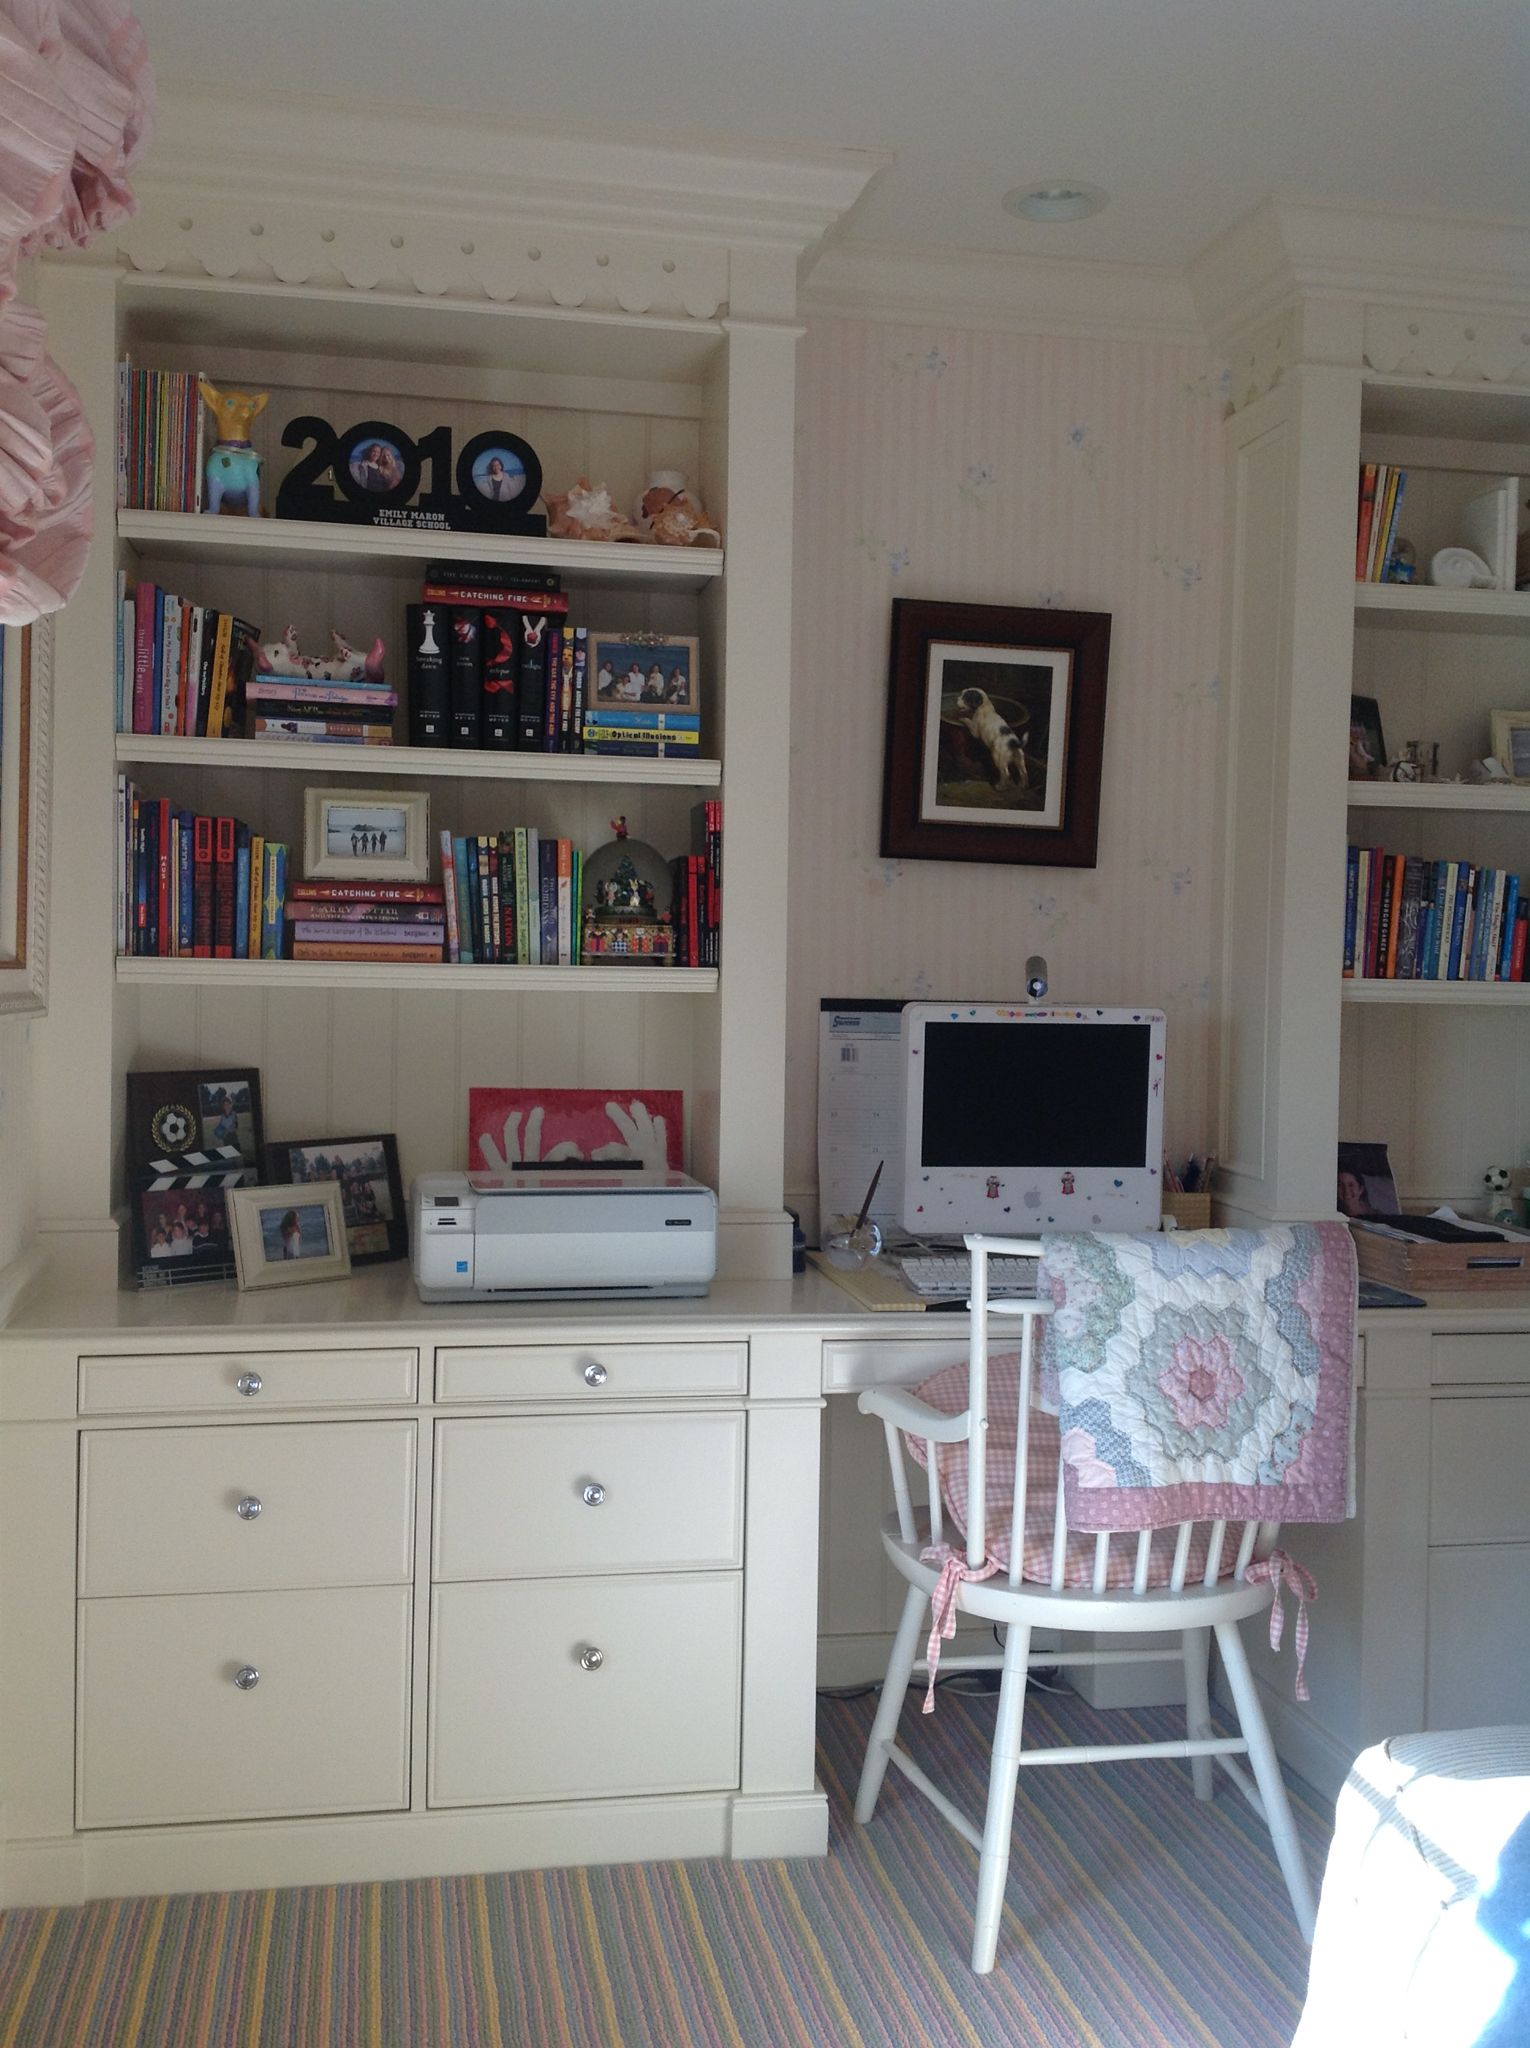 Nice bookcase and desk